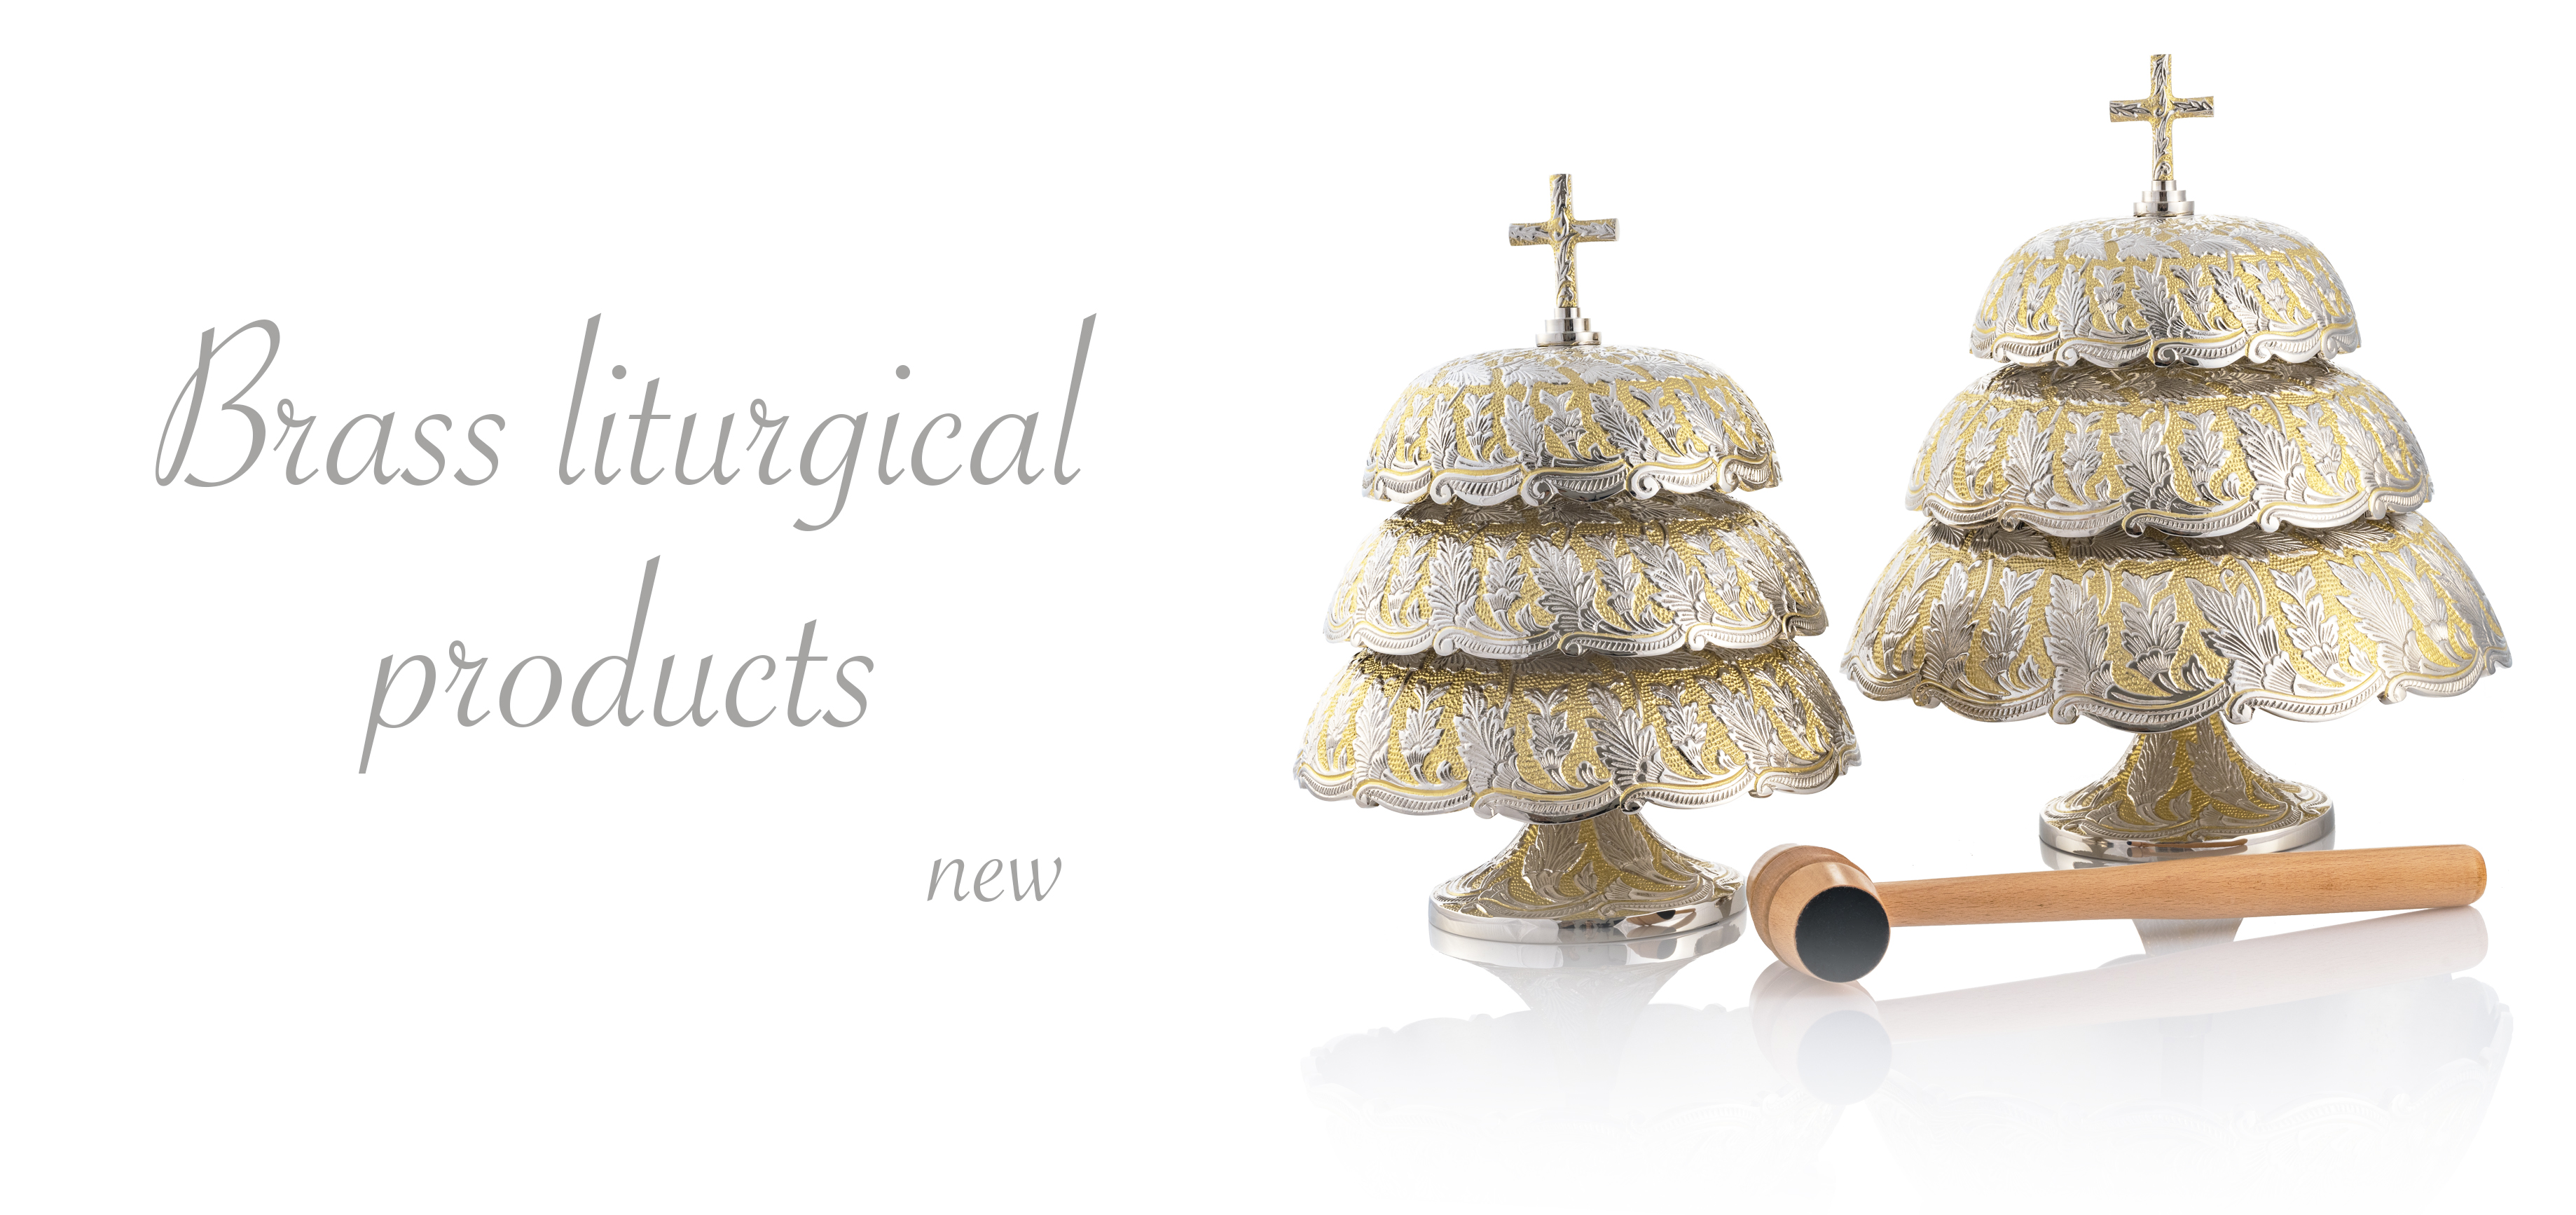 Brass liturgical products